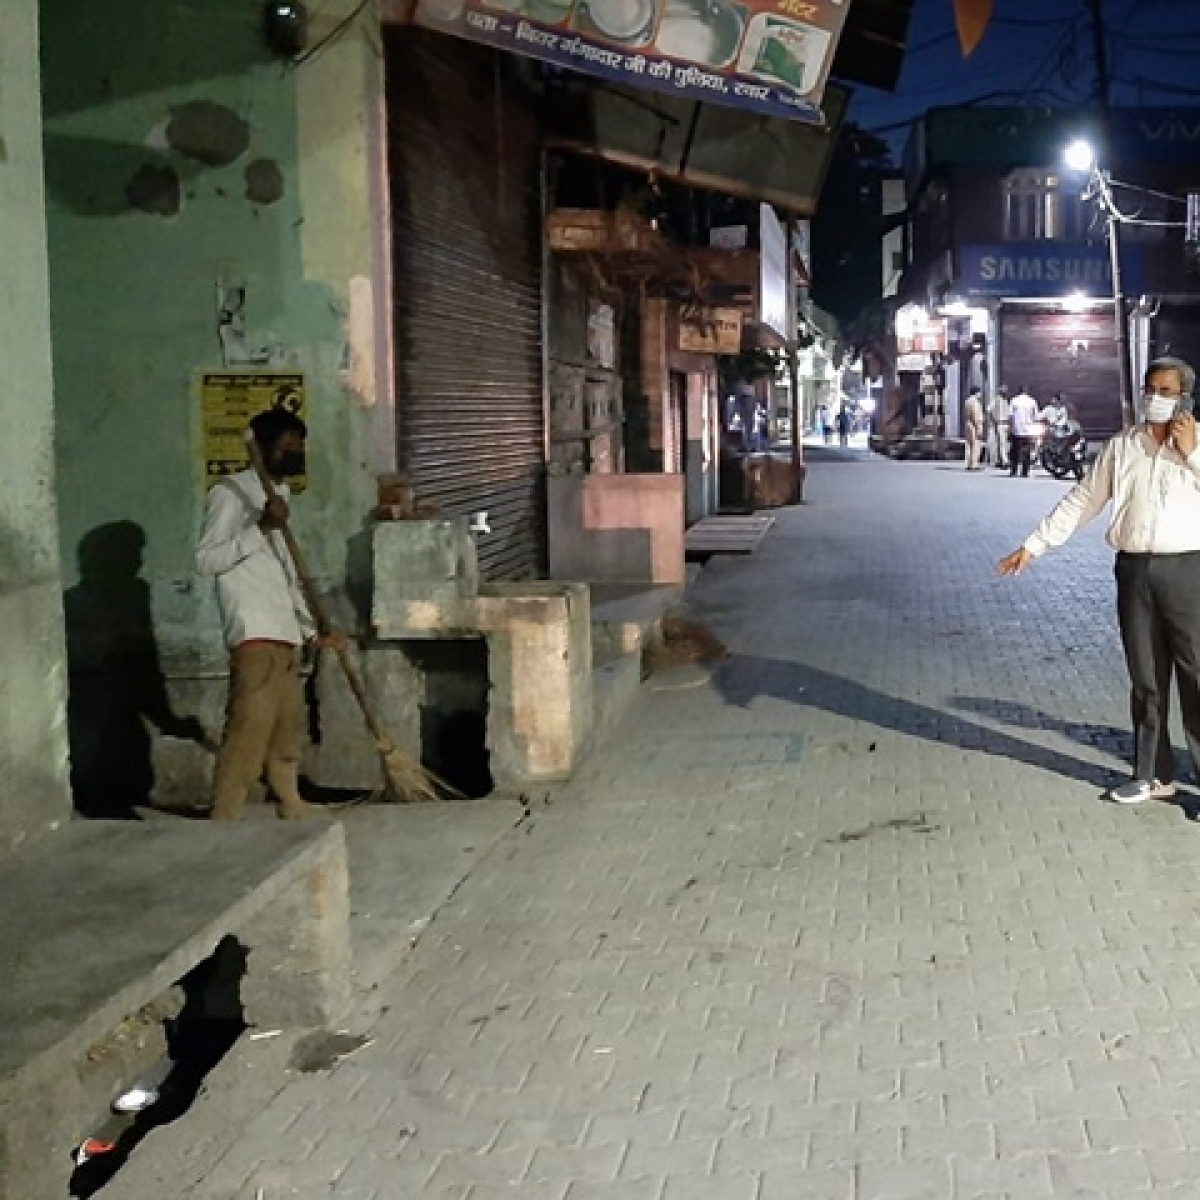 Coronavirus lockdown: Rampur youth calls District Magistrate asks for samosas, made to clean drain as punishment